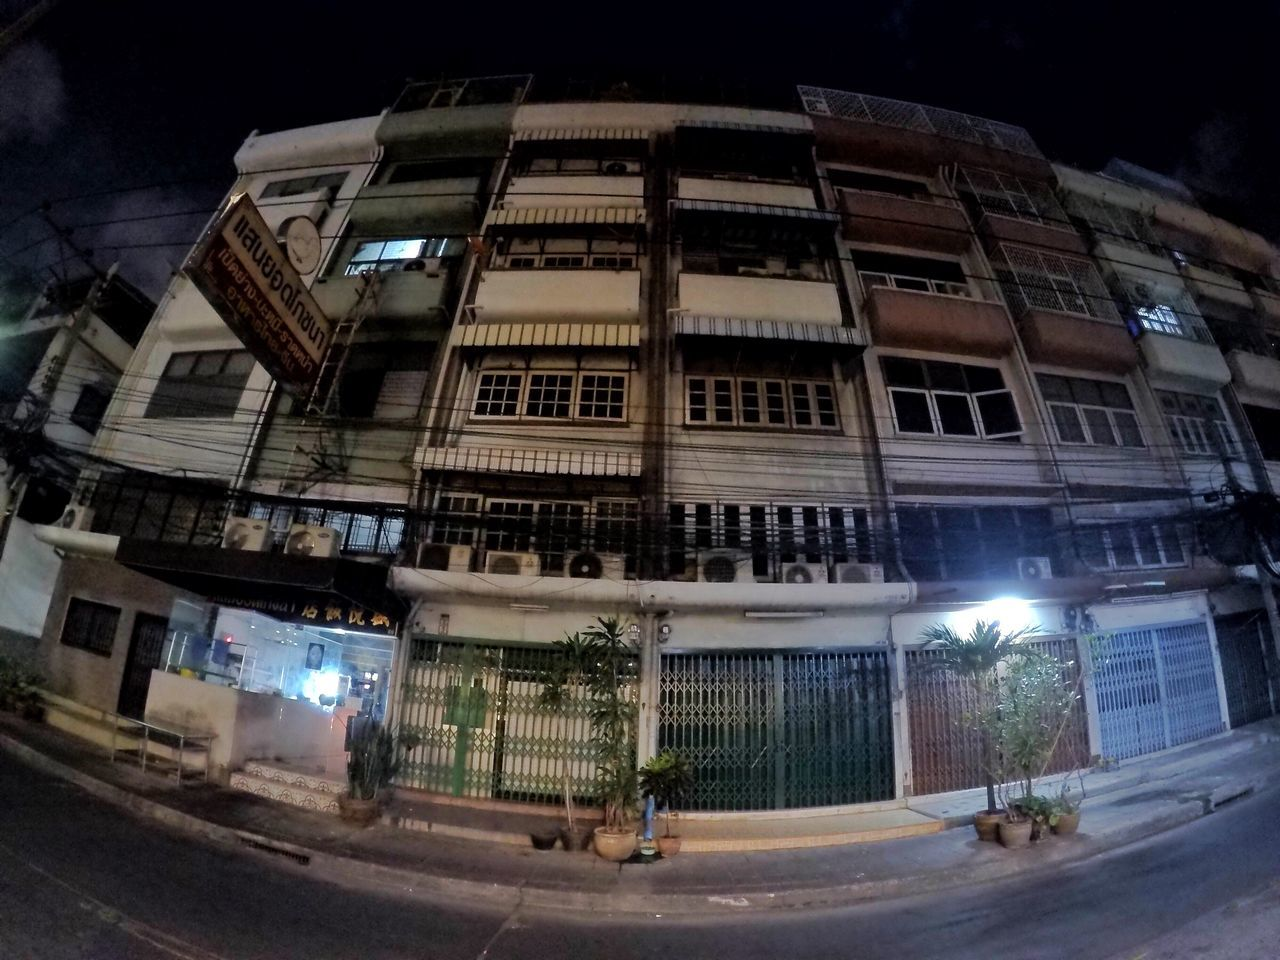 Architecture Building Exterior Built Structure City Night Illuminated Outdoors No People Streetphotography Bangkok City Now Thailand Photos Poor  GoPrography Architecture Streetphoto_bw Poorly